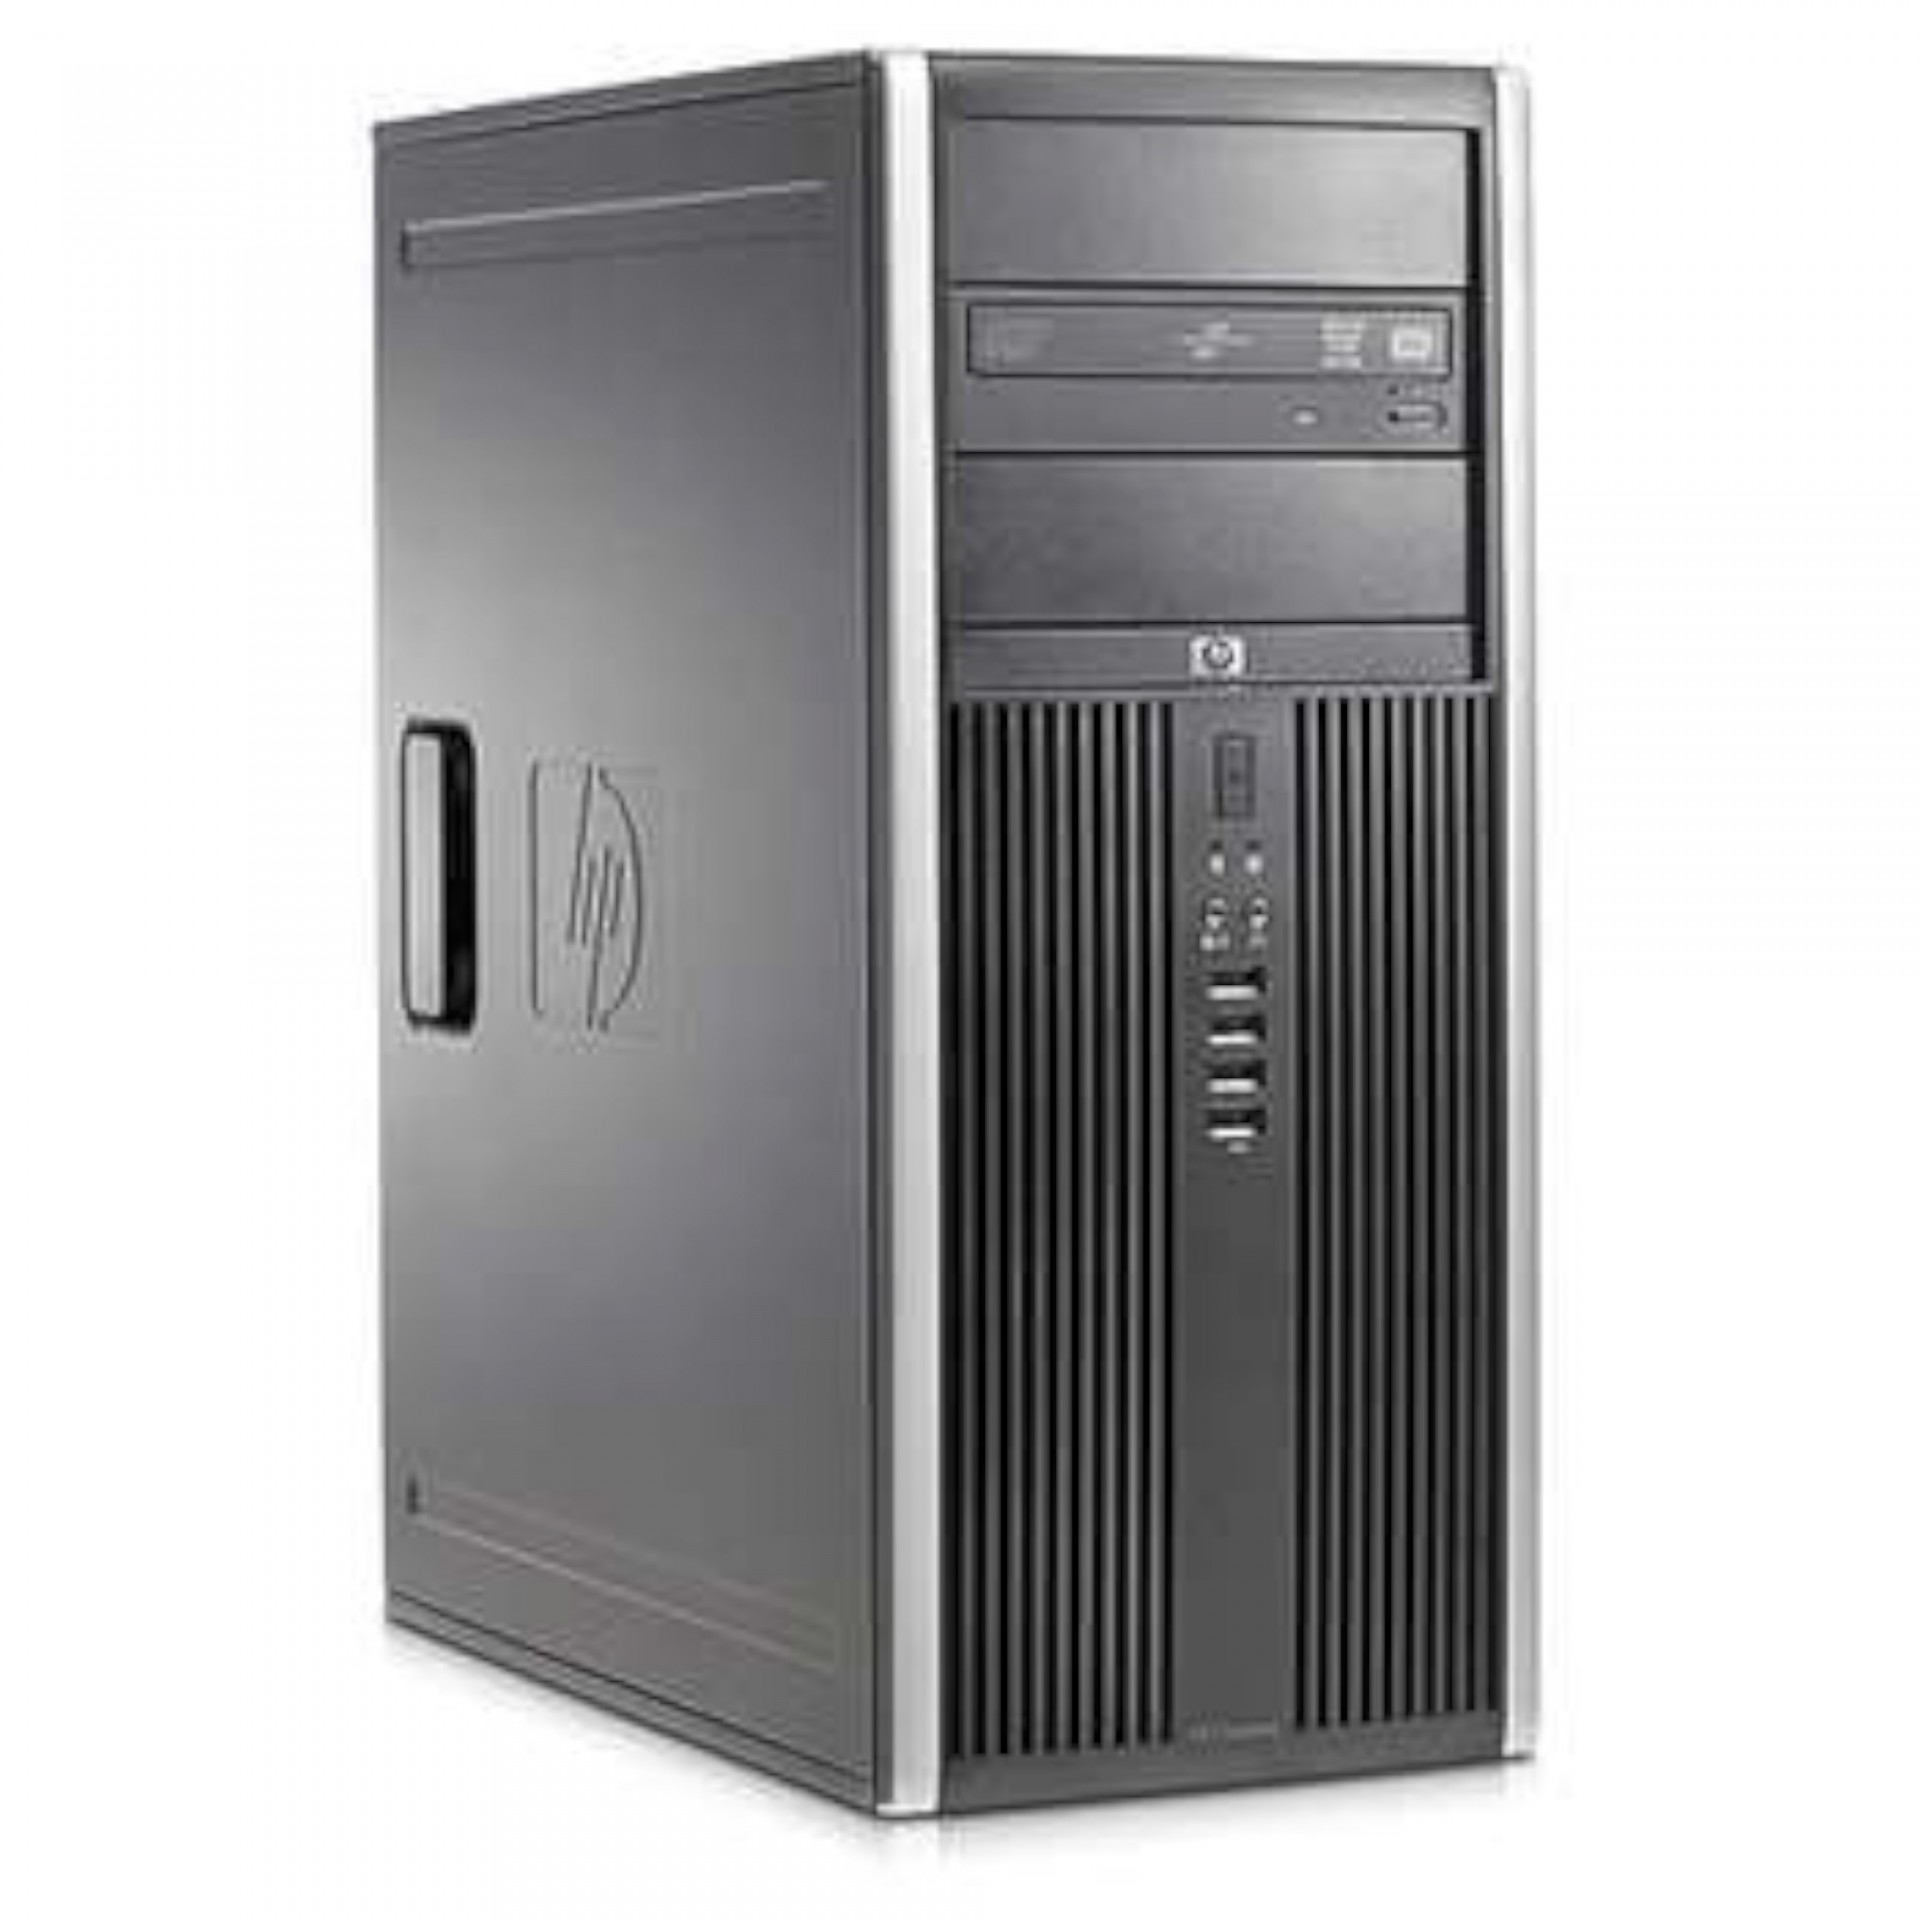 HP 8000 ELITE Tower E8400 4Gb 120Gb SSD DVD W10Pro - ECOPCHP8000TOWER_SSD